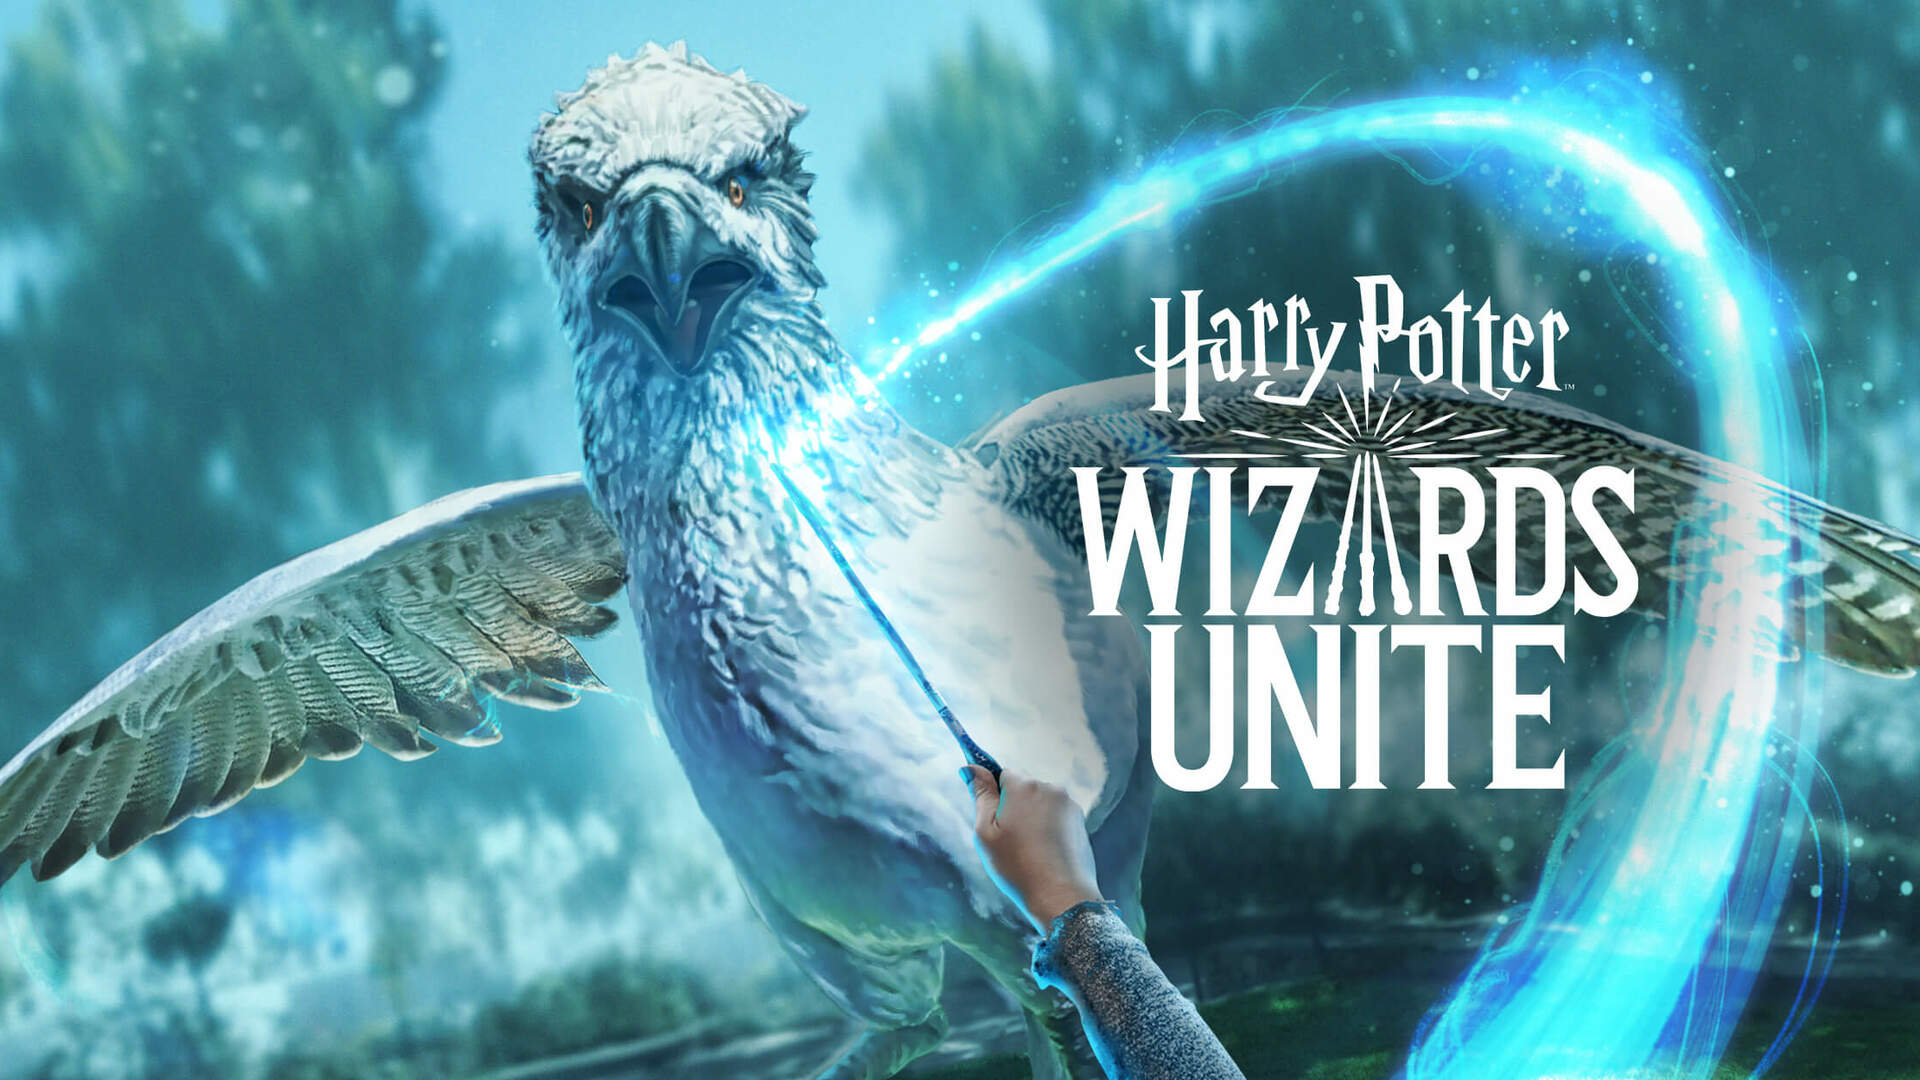 How to Reserve your Pokemon GO Trainer Nickname in Harry Potter Wizards Unite!